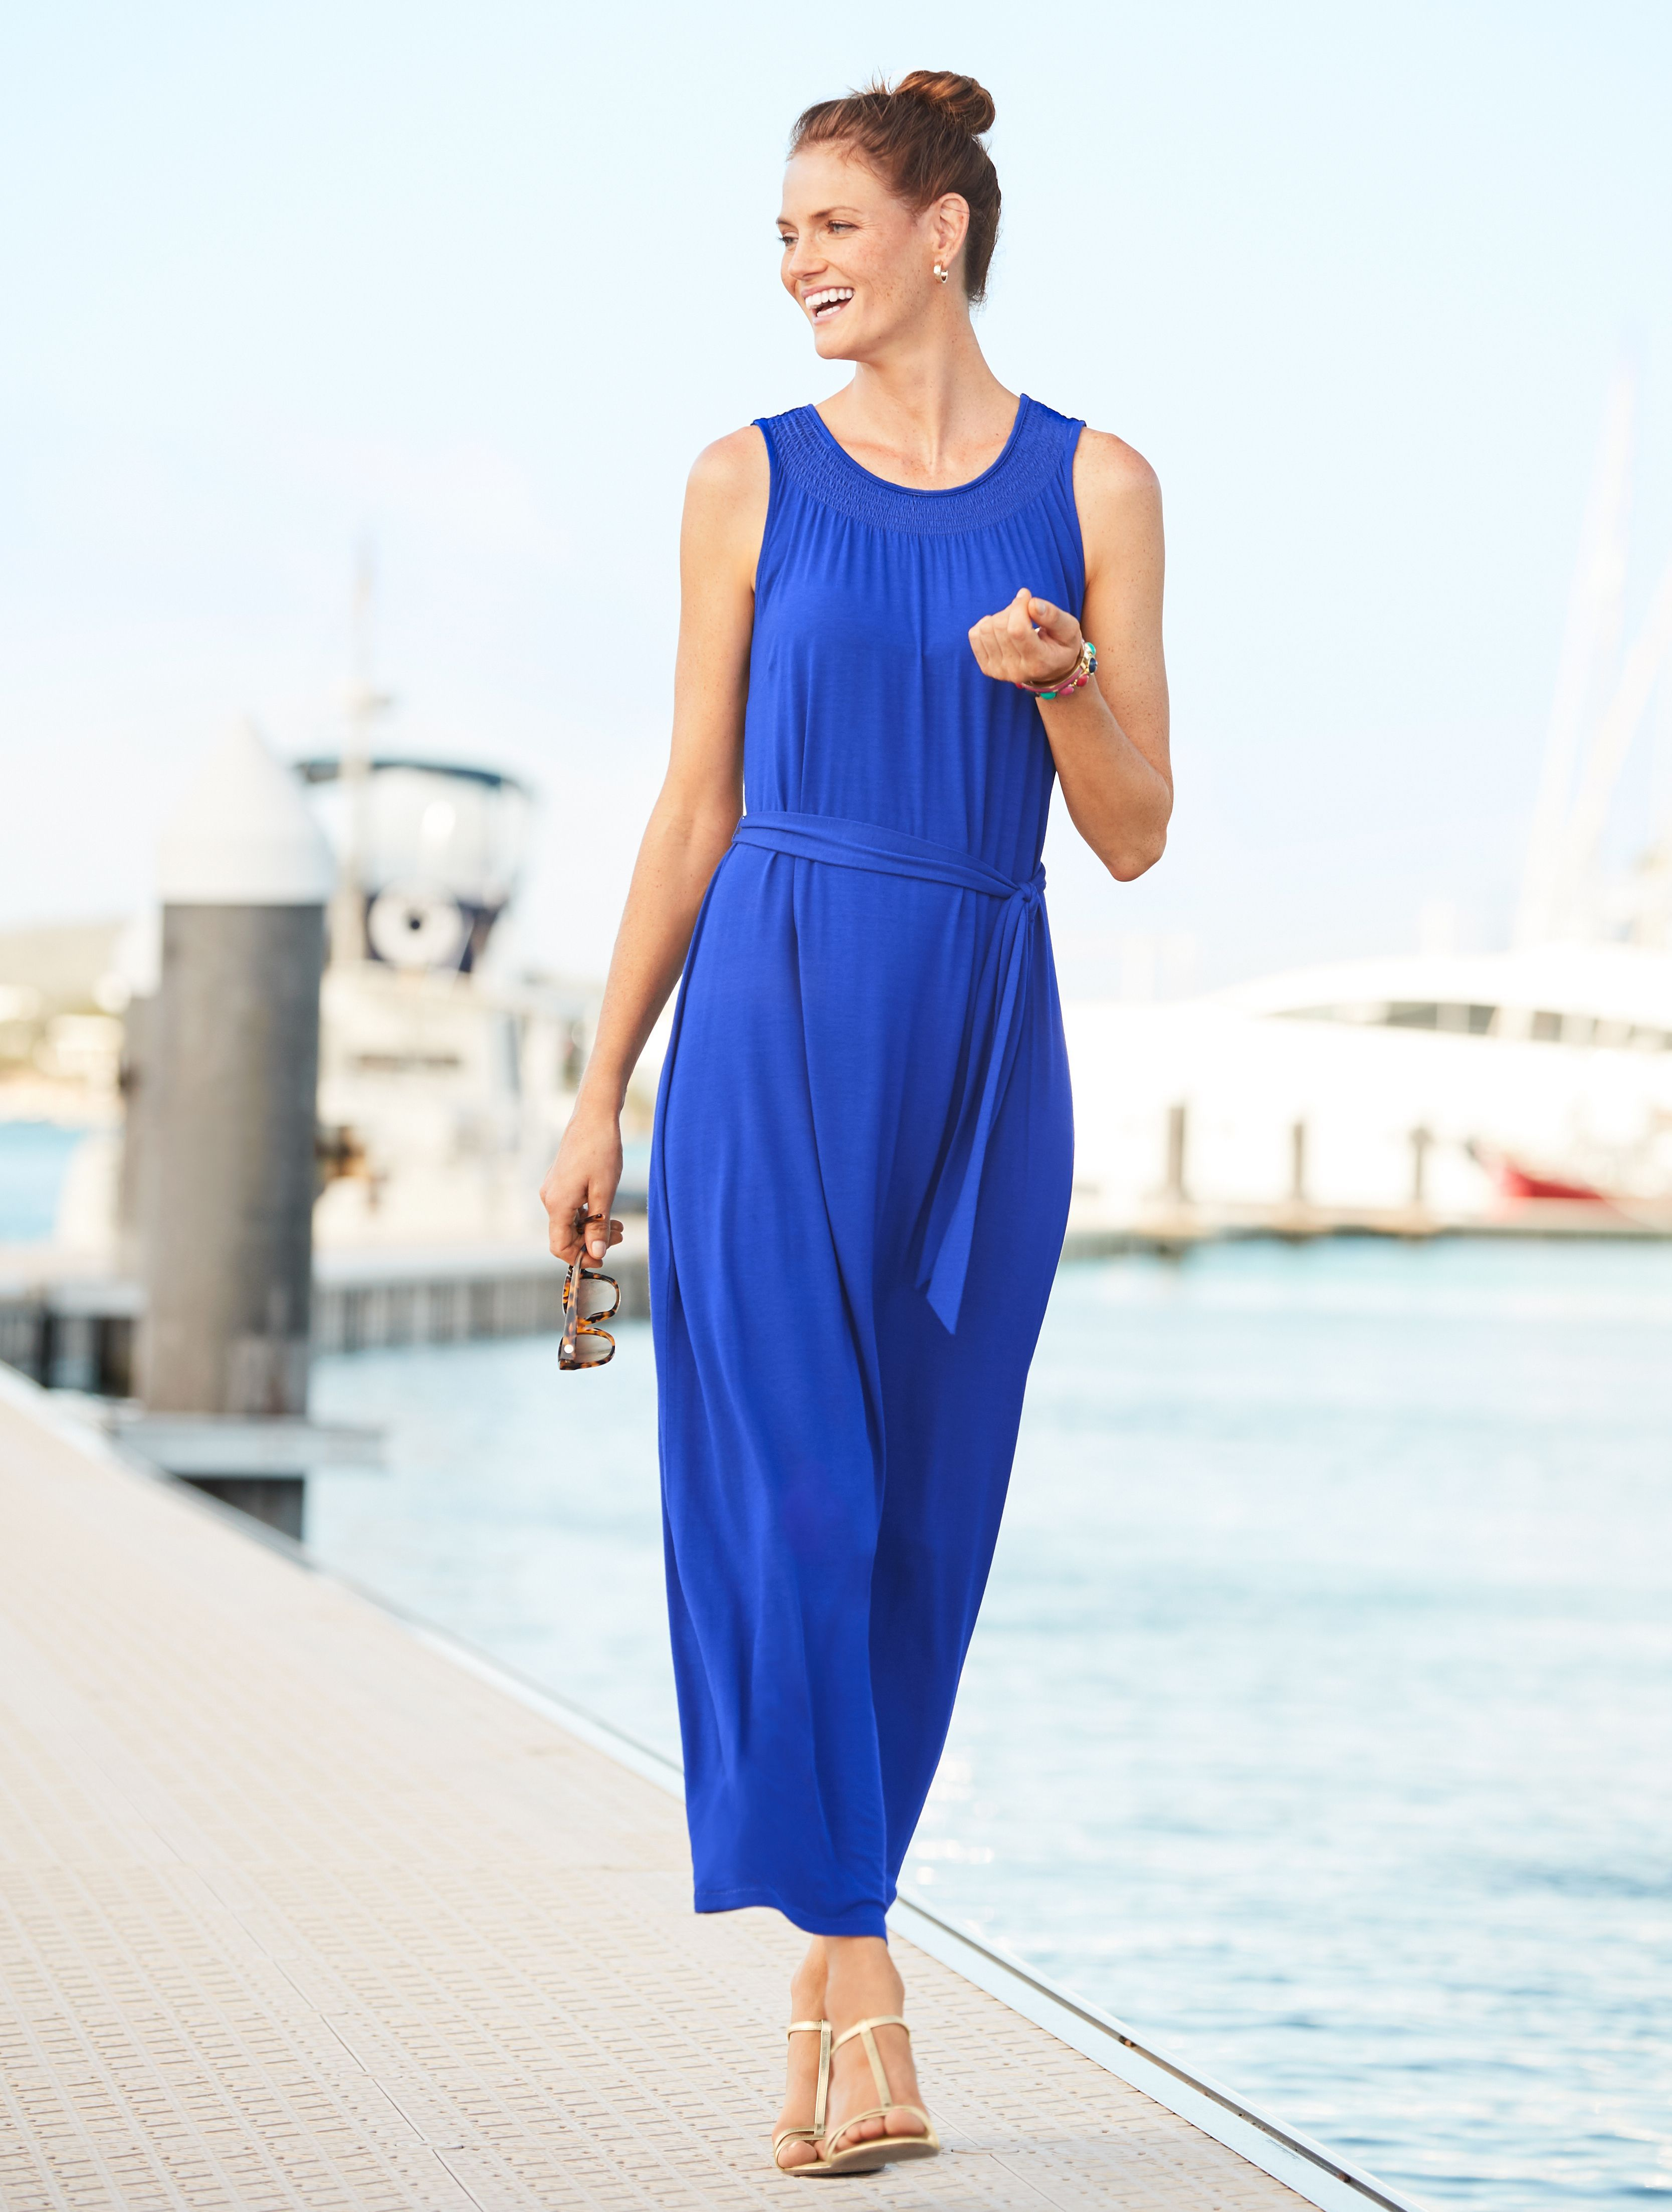 Our New Must Have Maxi Dress Goes Just About Anywhere From Beach To Bistro Add A Soft Shrug When It Gets Cool Talbots Maxi Dress Dresses Fashion [ 4413 x 3336 Pixel ]